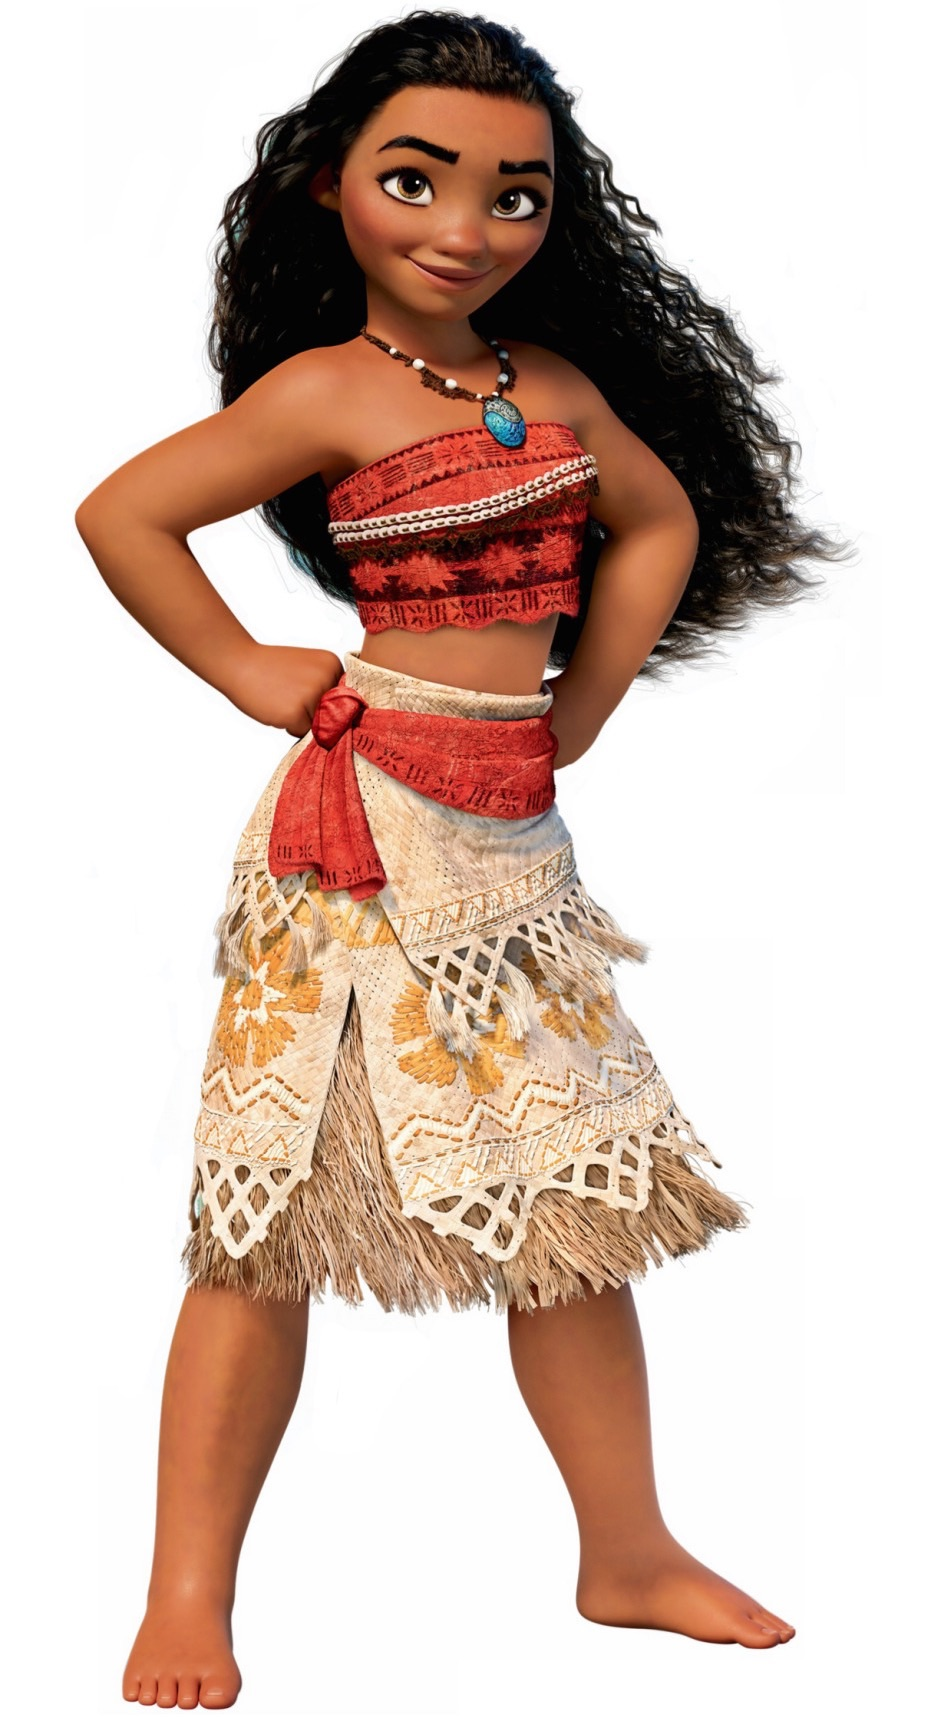 Moana (personagem)